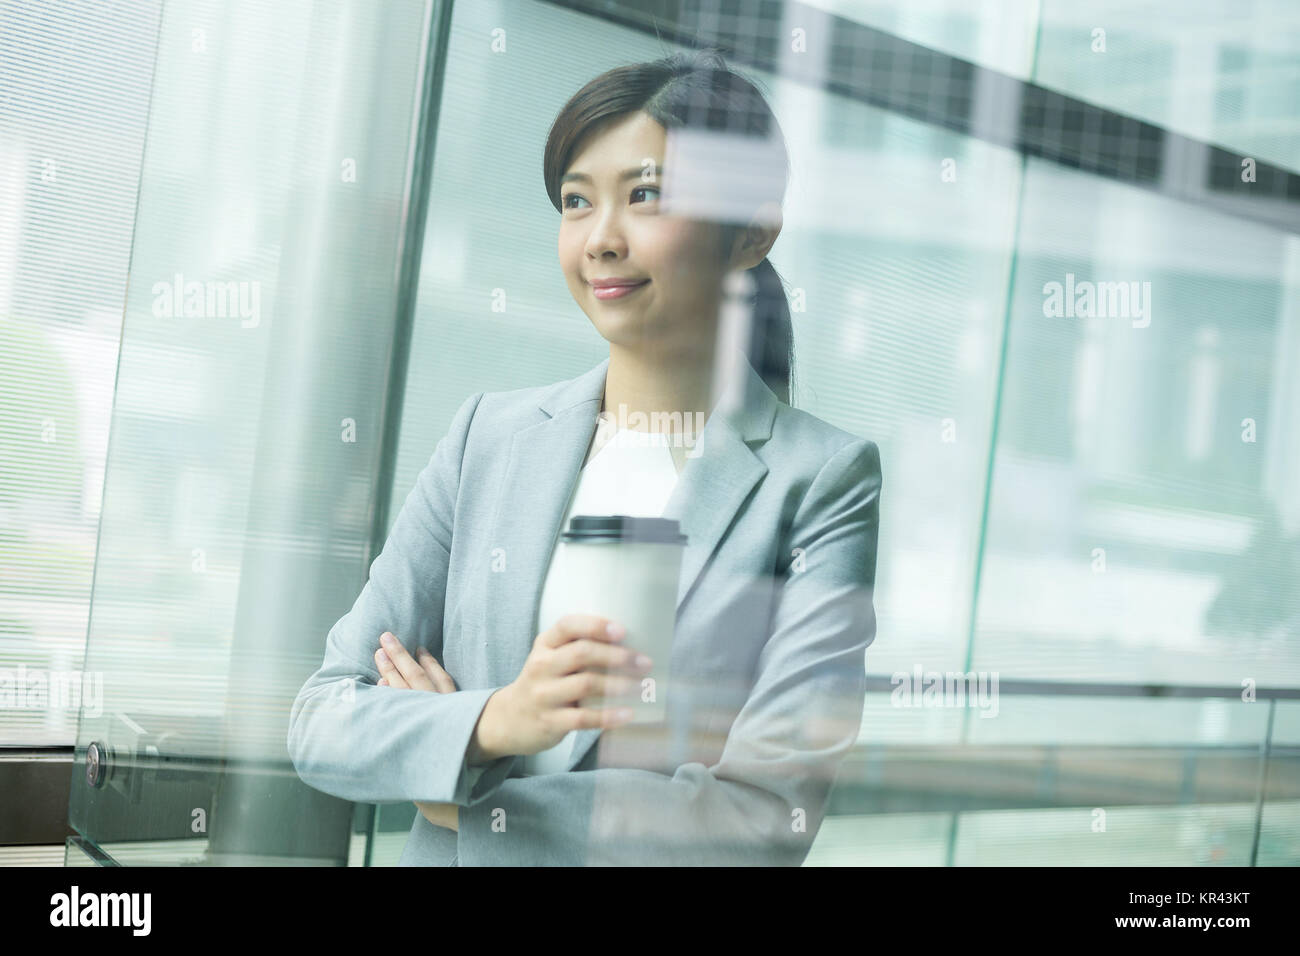 Asian businesswoman inside office - Stock Image